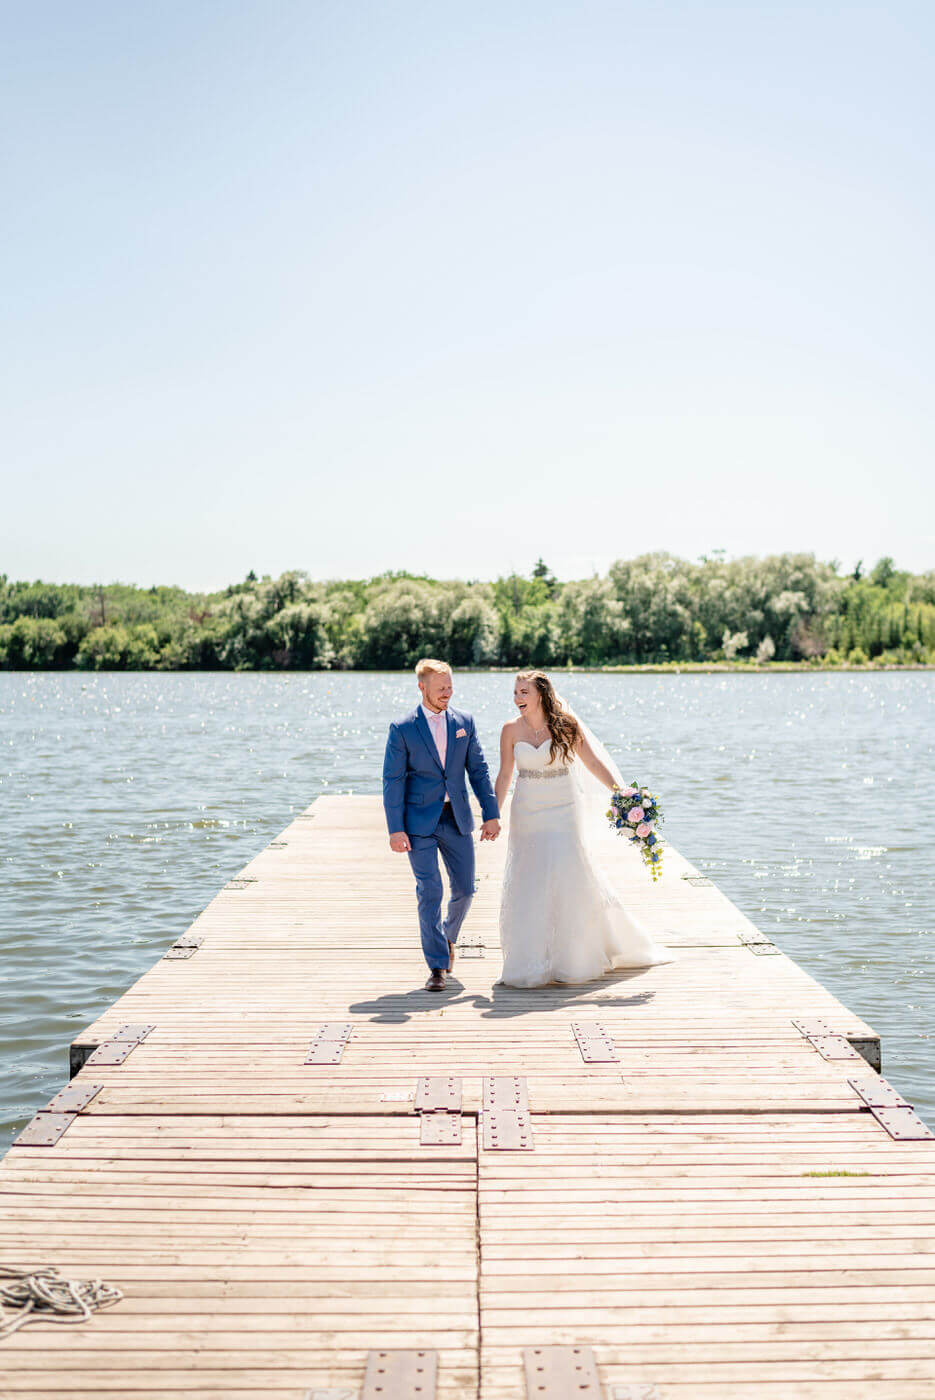 Evan & Chantel - Bride & Groom walking on dock on Wascana Lake